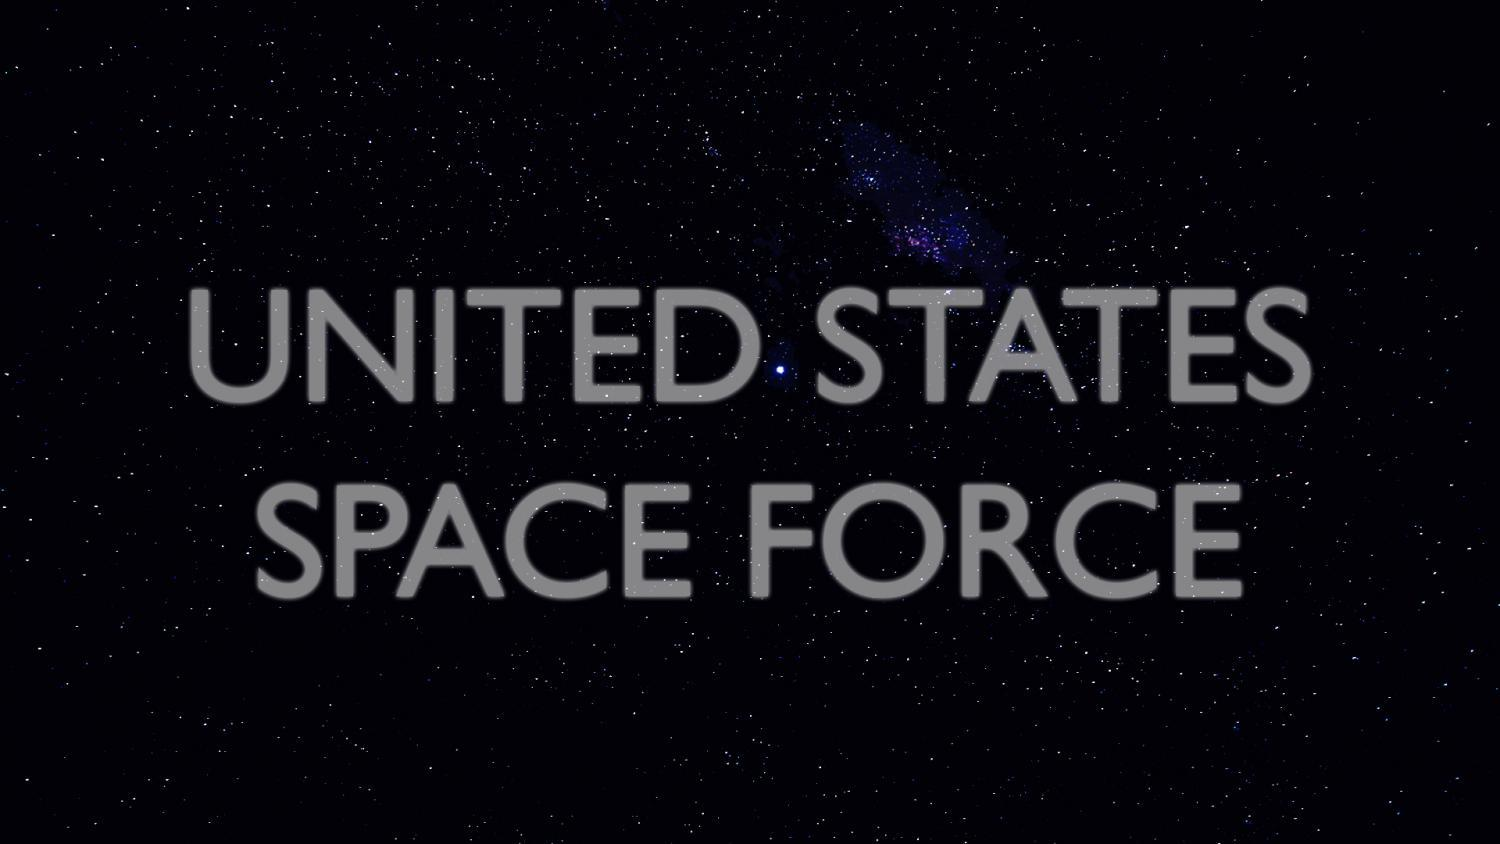 Air Force Space Force